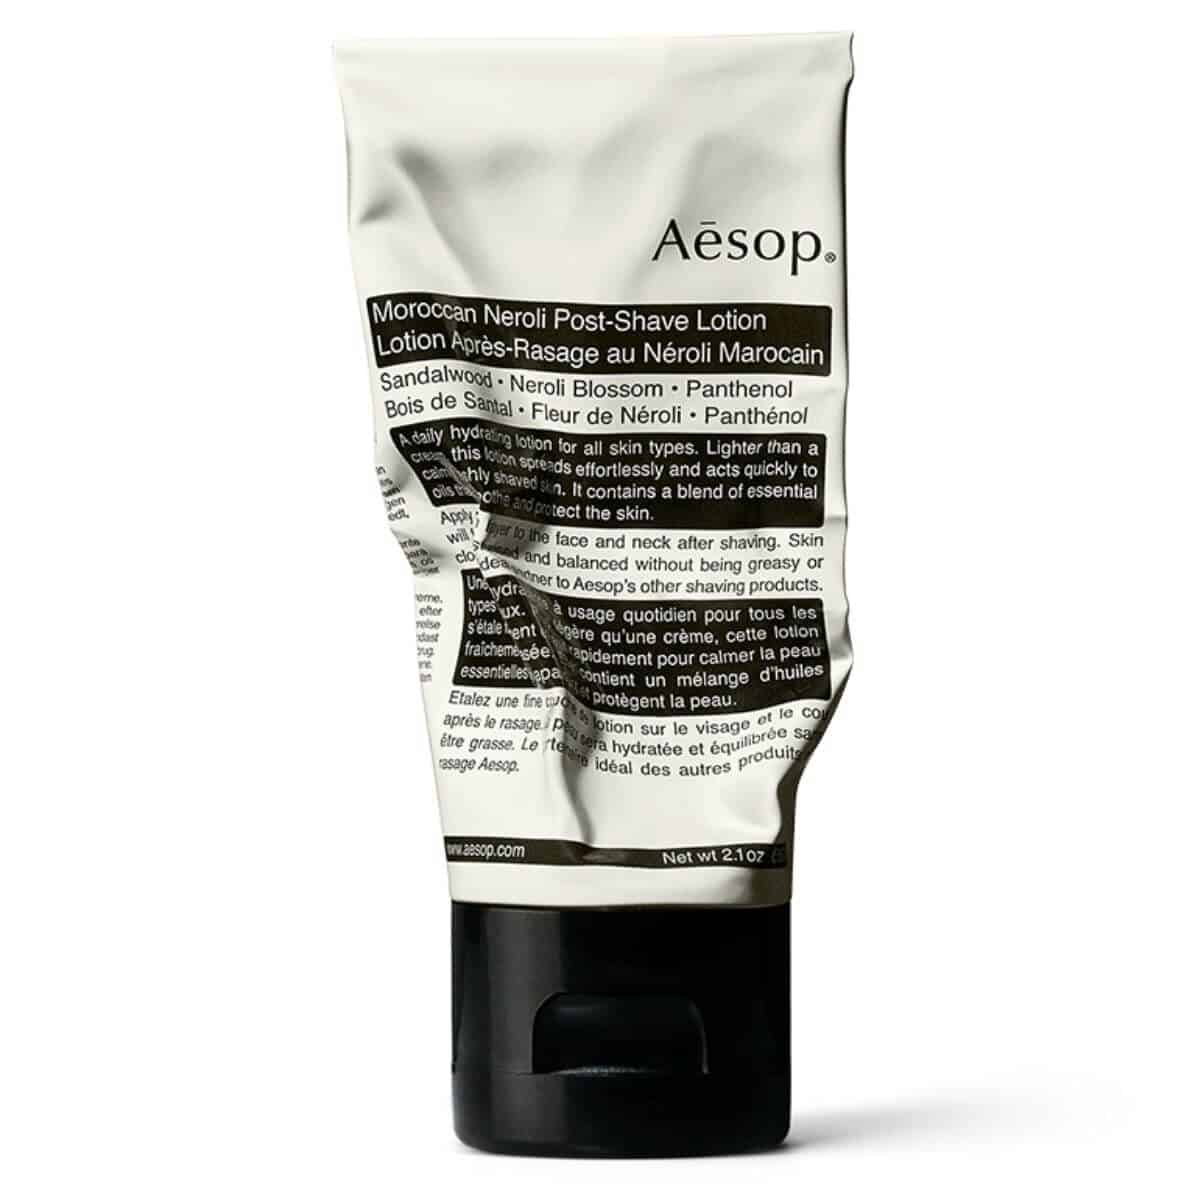 Aesop post-shave lotion.